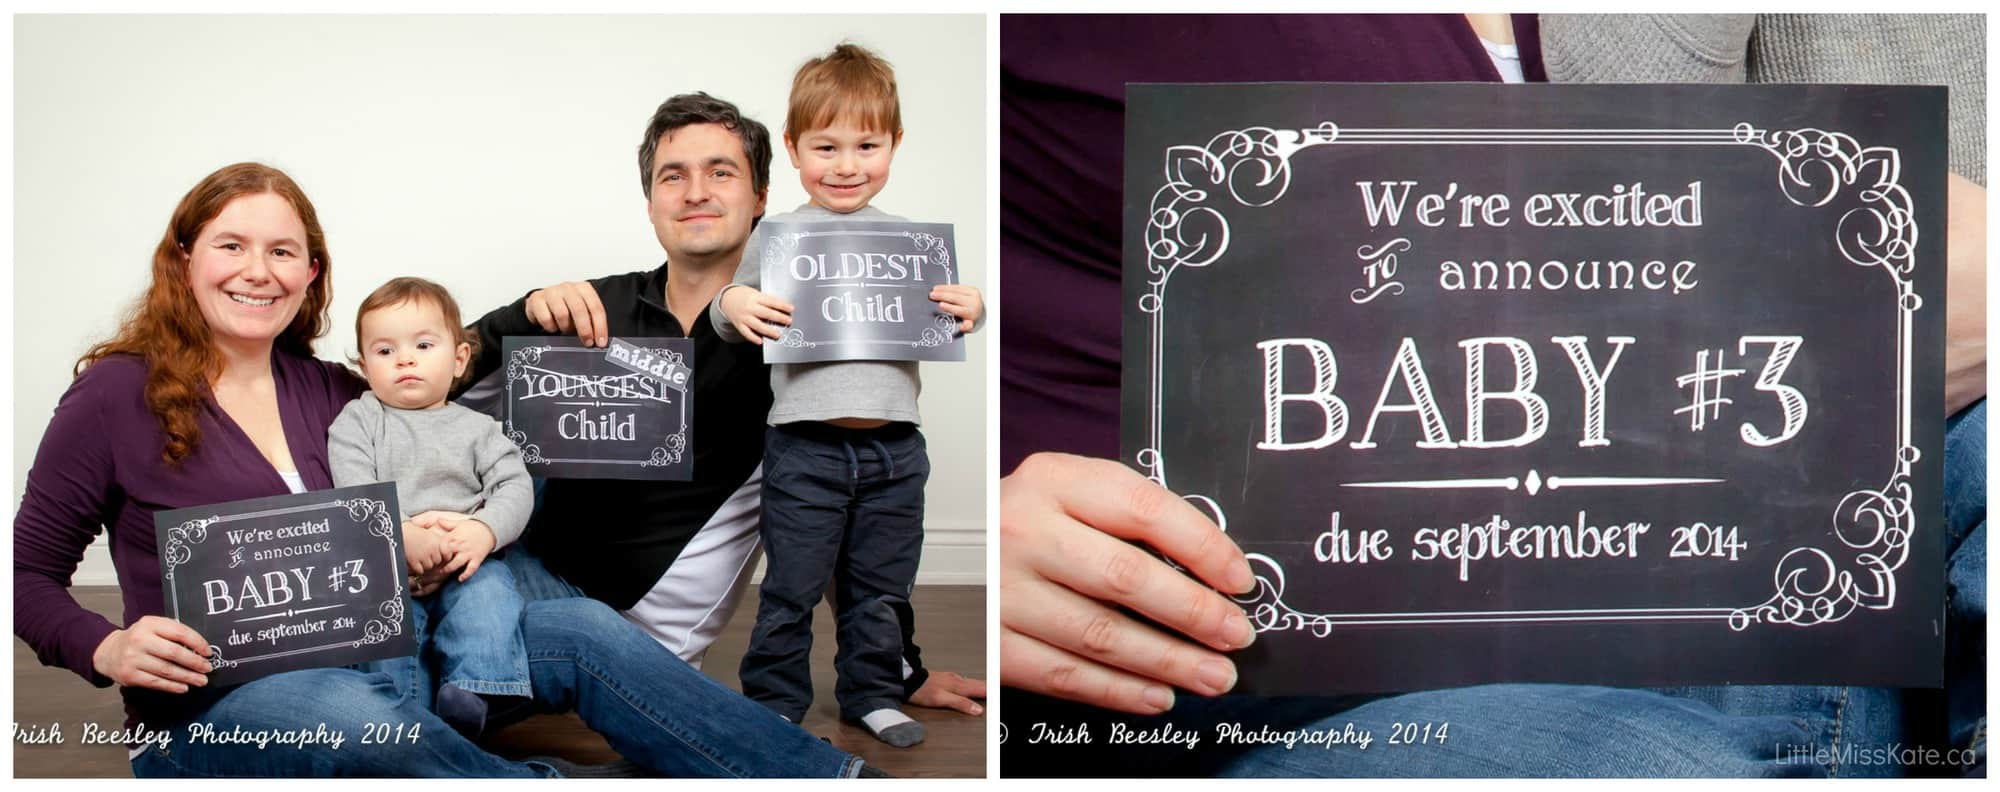 Pregnancy Announcement Ideas Fun Creative Ways to Announce a – Ideas to Announce Baby